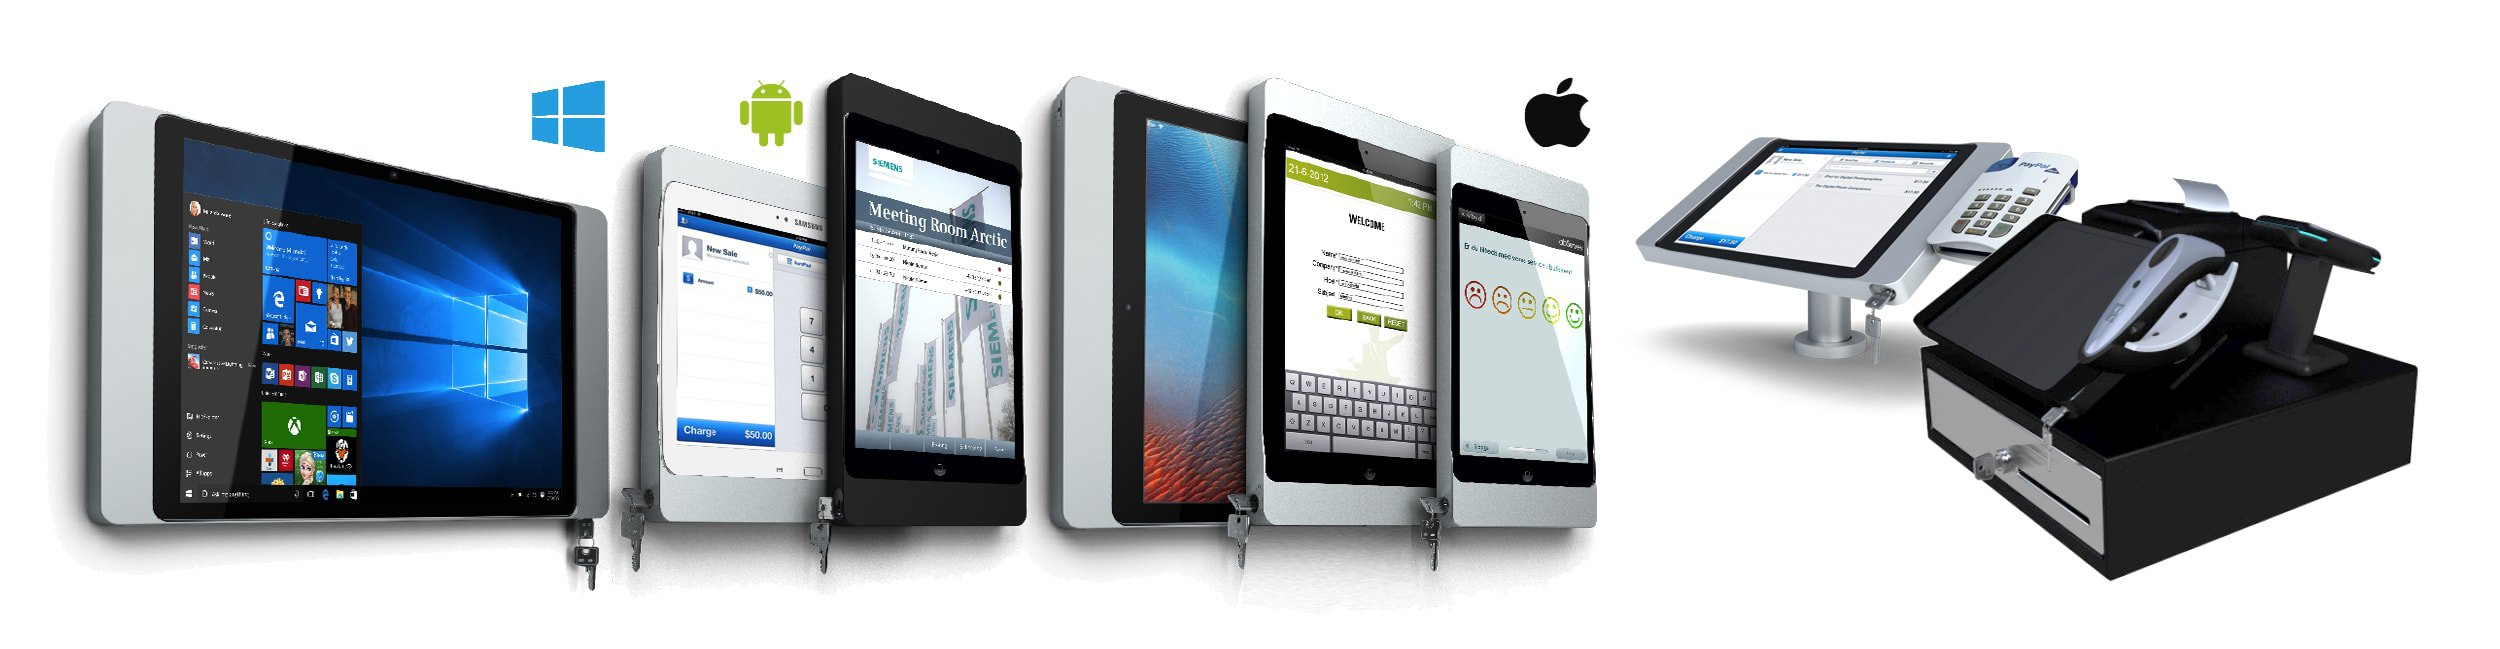 BoxIT tablet solutions